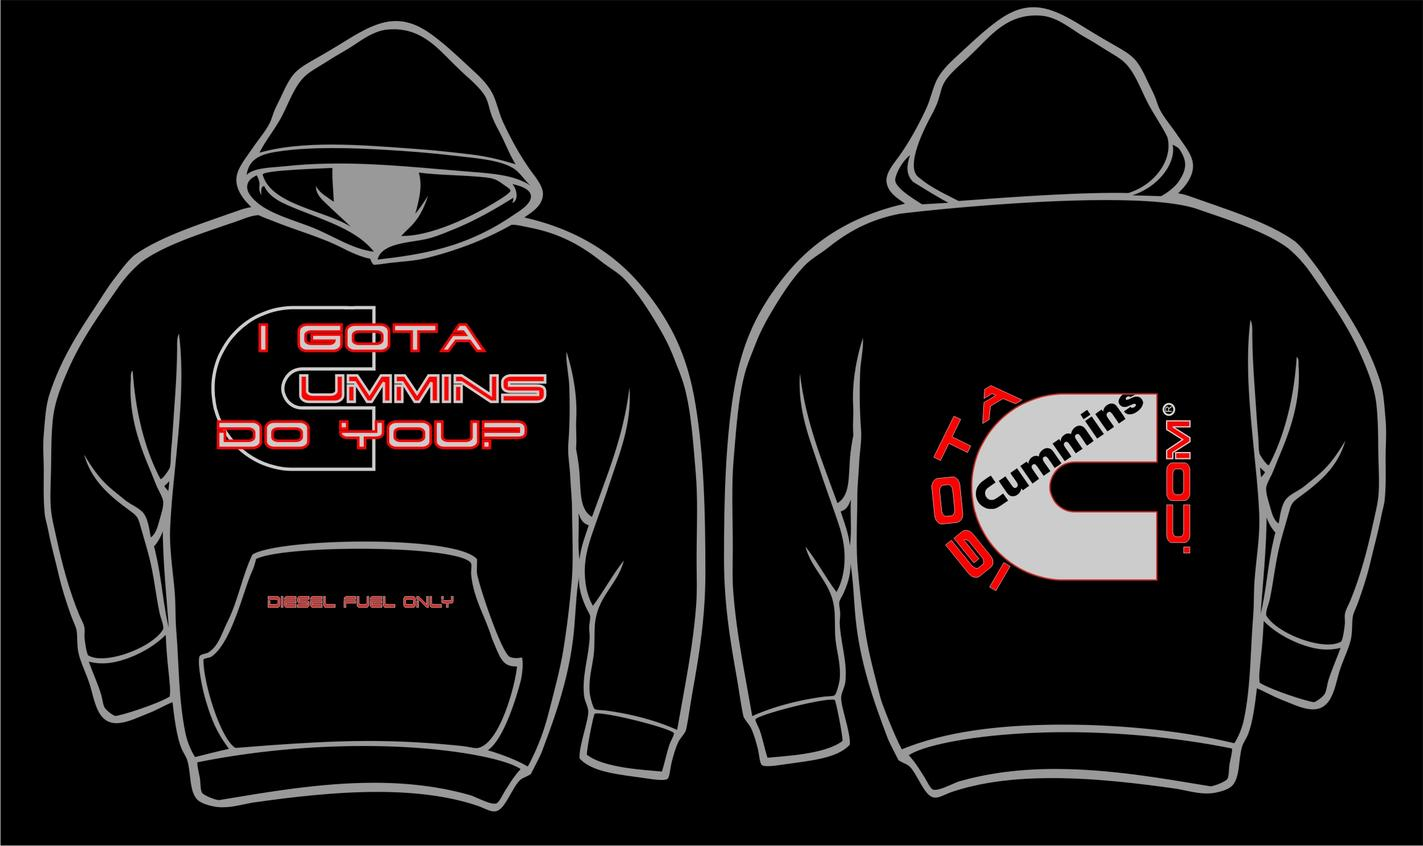 Please visit our store to purchase all your IGOTACUMMINS.COM Apparel & Stickers.